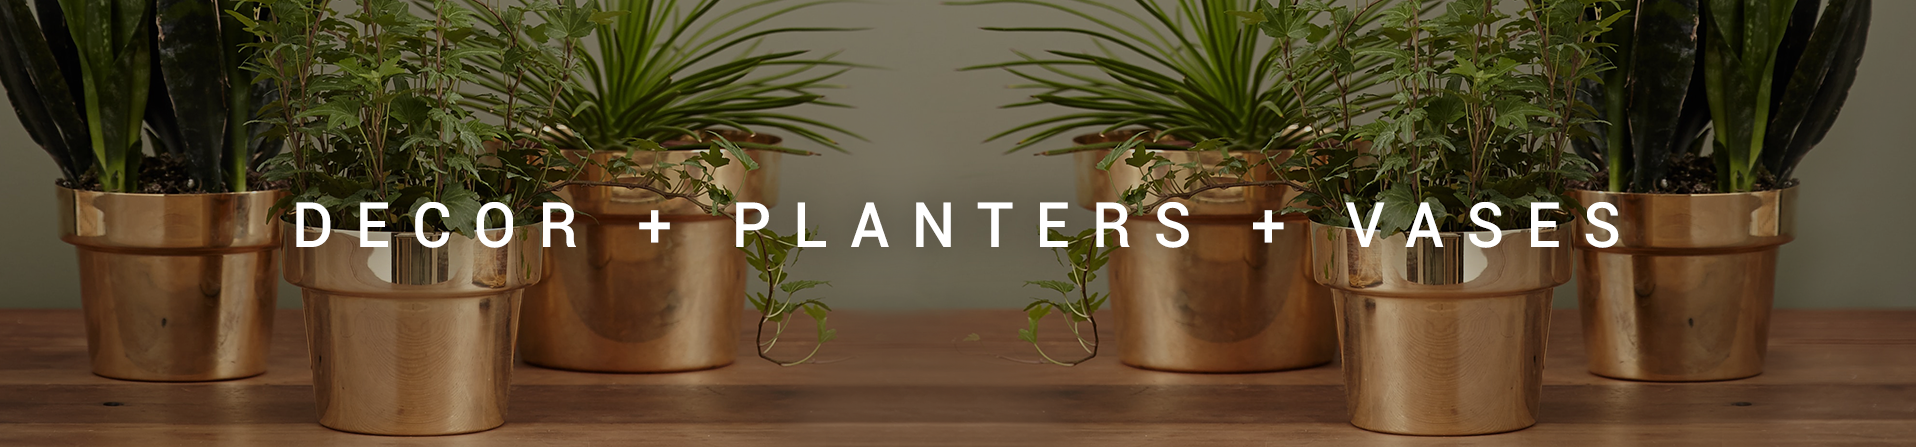 - Decor + Planters + Vases -